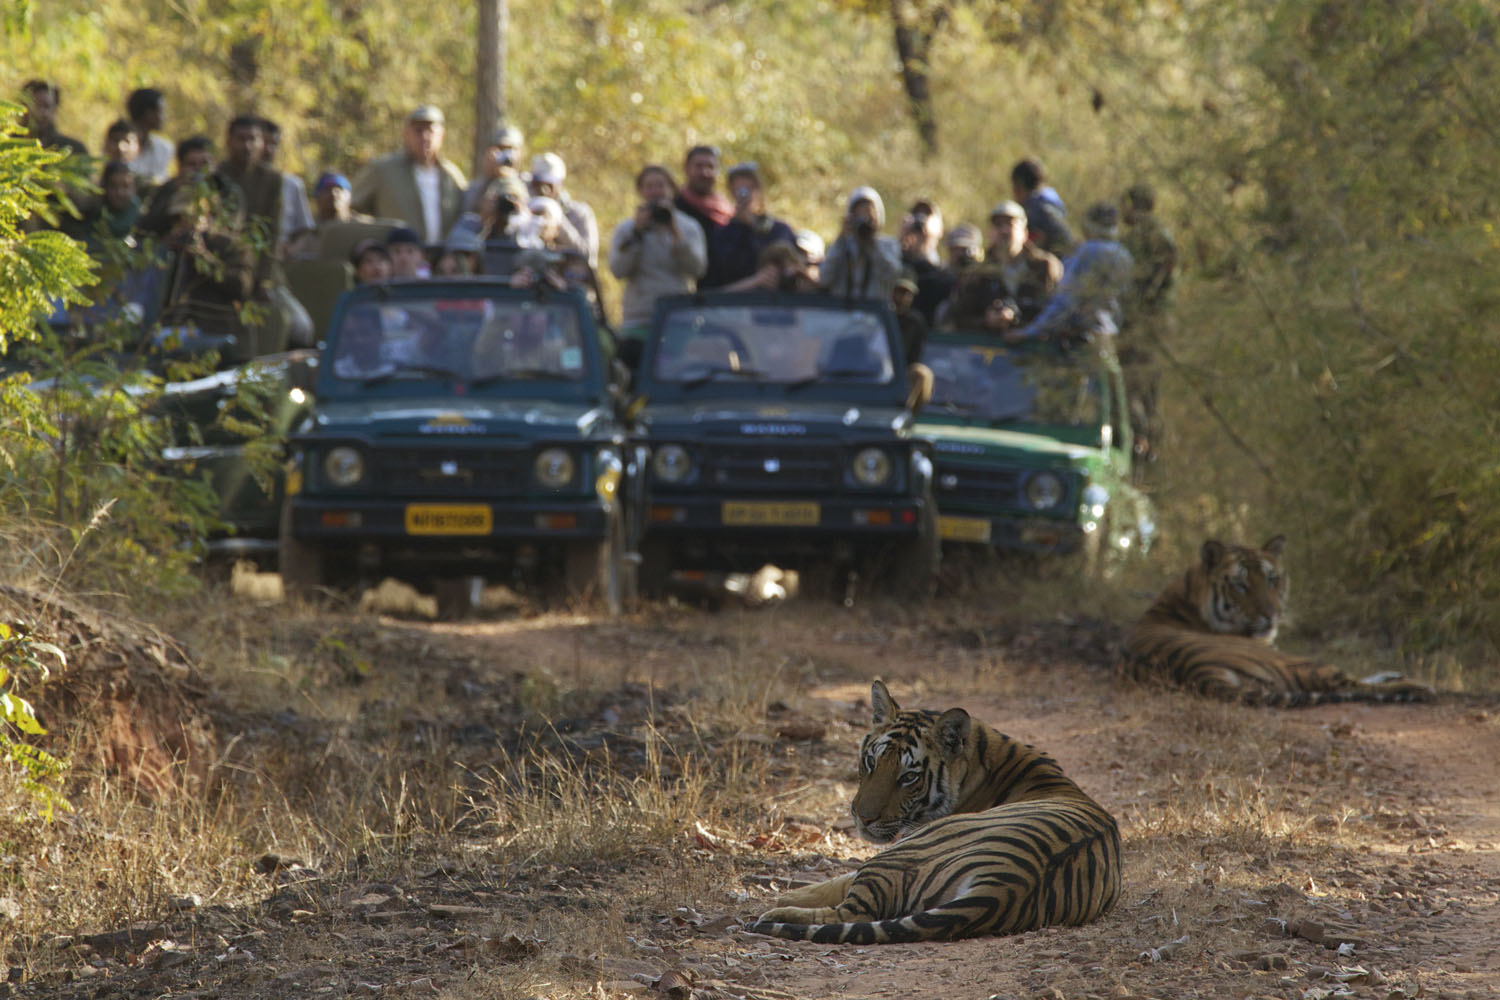 A crowd of tourists  photographing two tiger cubs sitting on a road inside Bandhavgarh National Park, India.